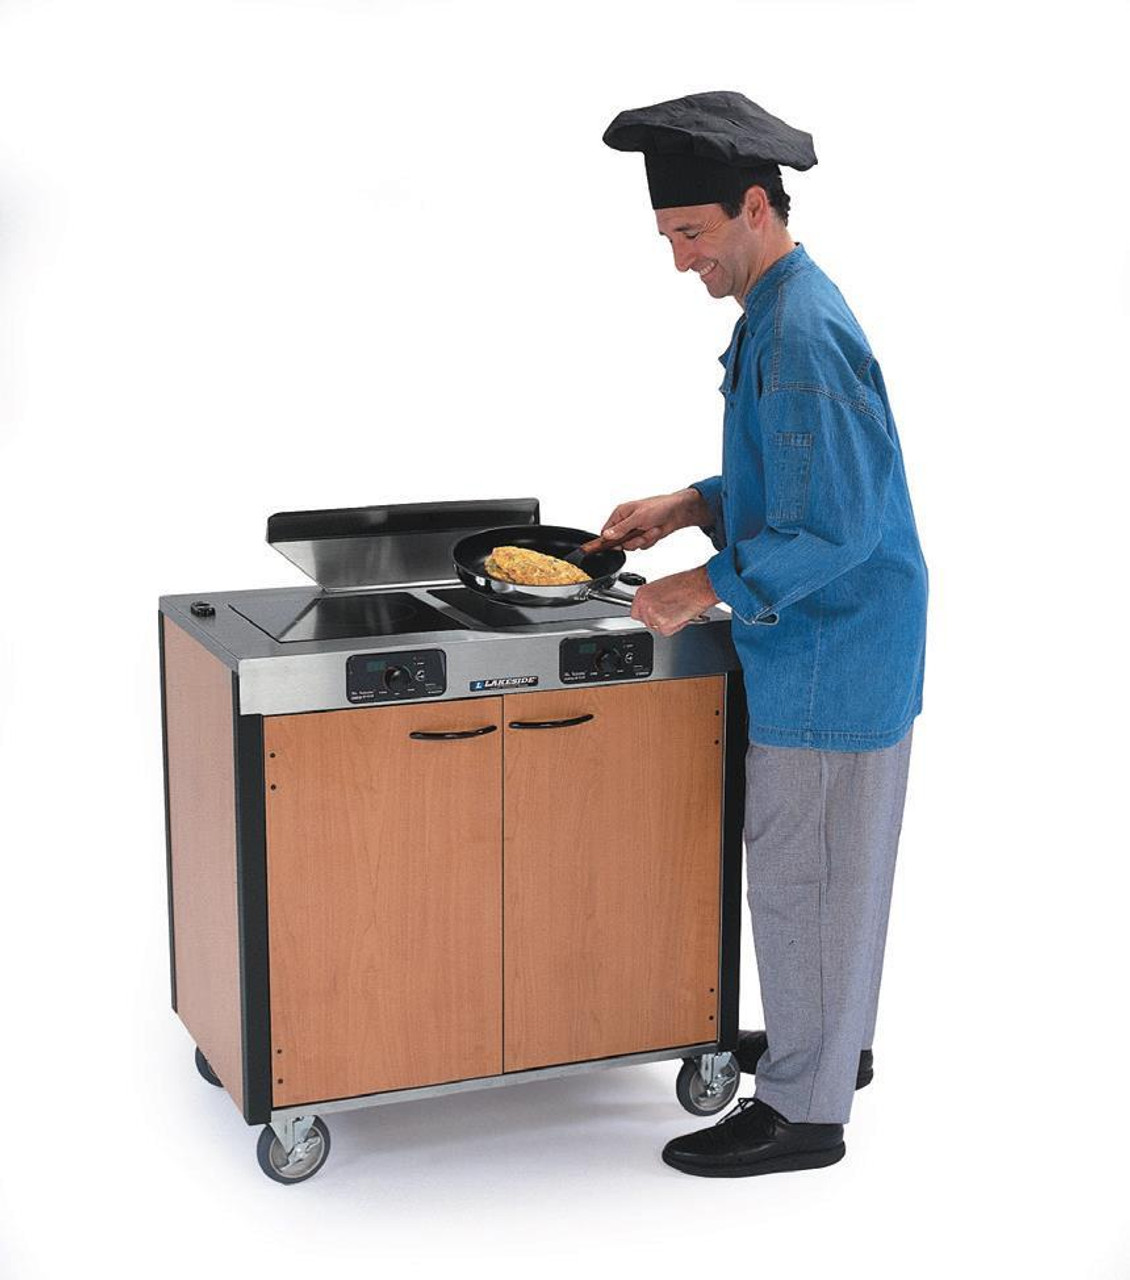 """Creation Express™ Station Mobile Cooking Cart, 34"""" x 22"""" x 40-1/2""""H, temperature range 90° - 440°F, LED control panel, (2) induction heat stove, (1) down draft filtration system, stainless steel top, stainless steel interior with laminated exterior, with doors, 5"""" swivel No-Mark® polyurethane casters (2) with brakes, ETL, Made in USA"""